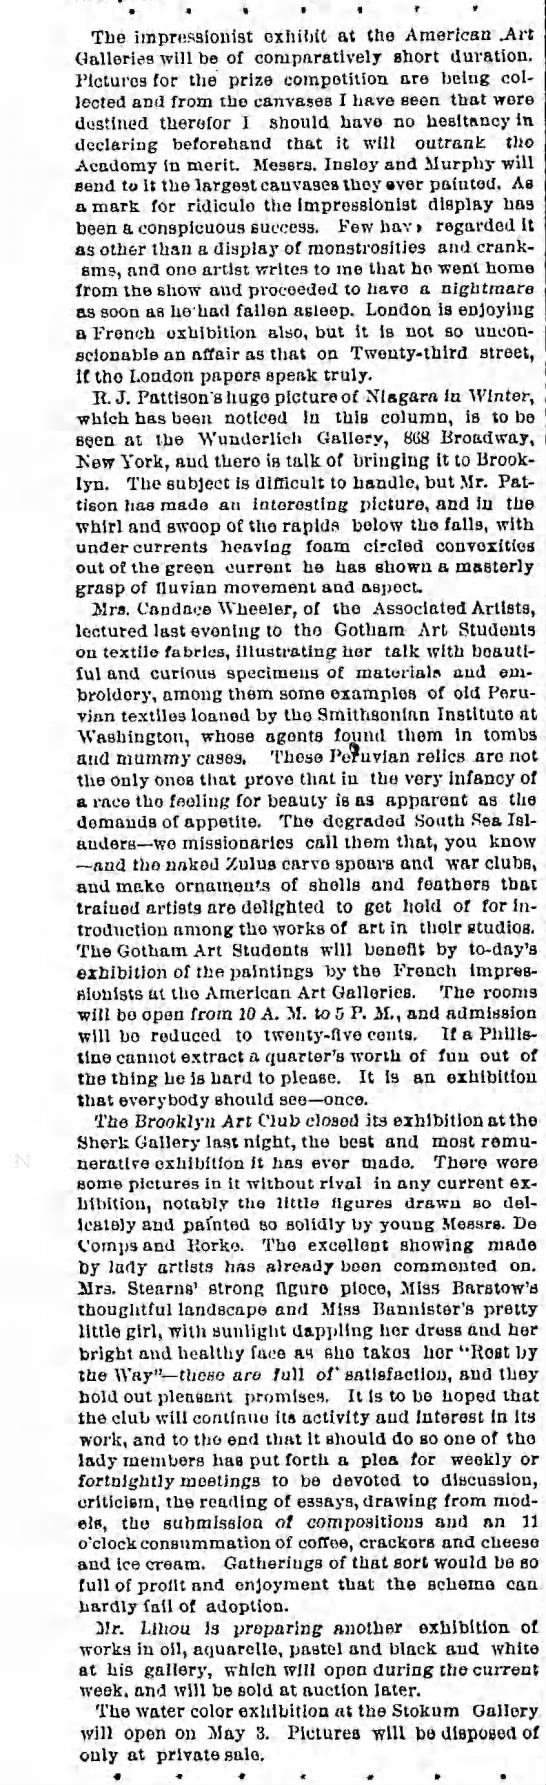 Negative review of French Impressionism exhibit in NYC in 1866. - The impressionist oxiiibit at the American .Art...